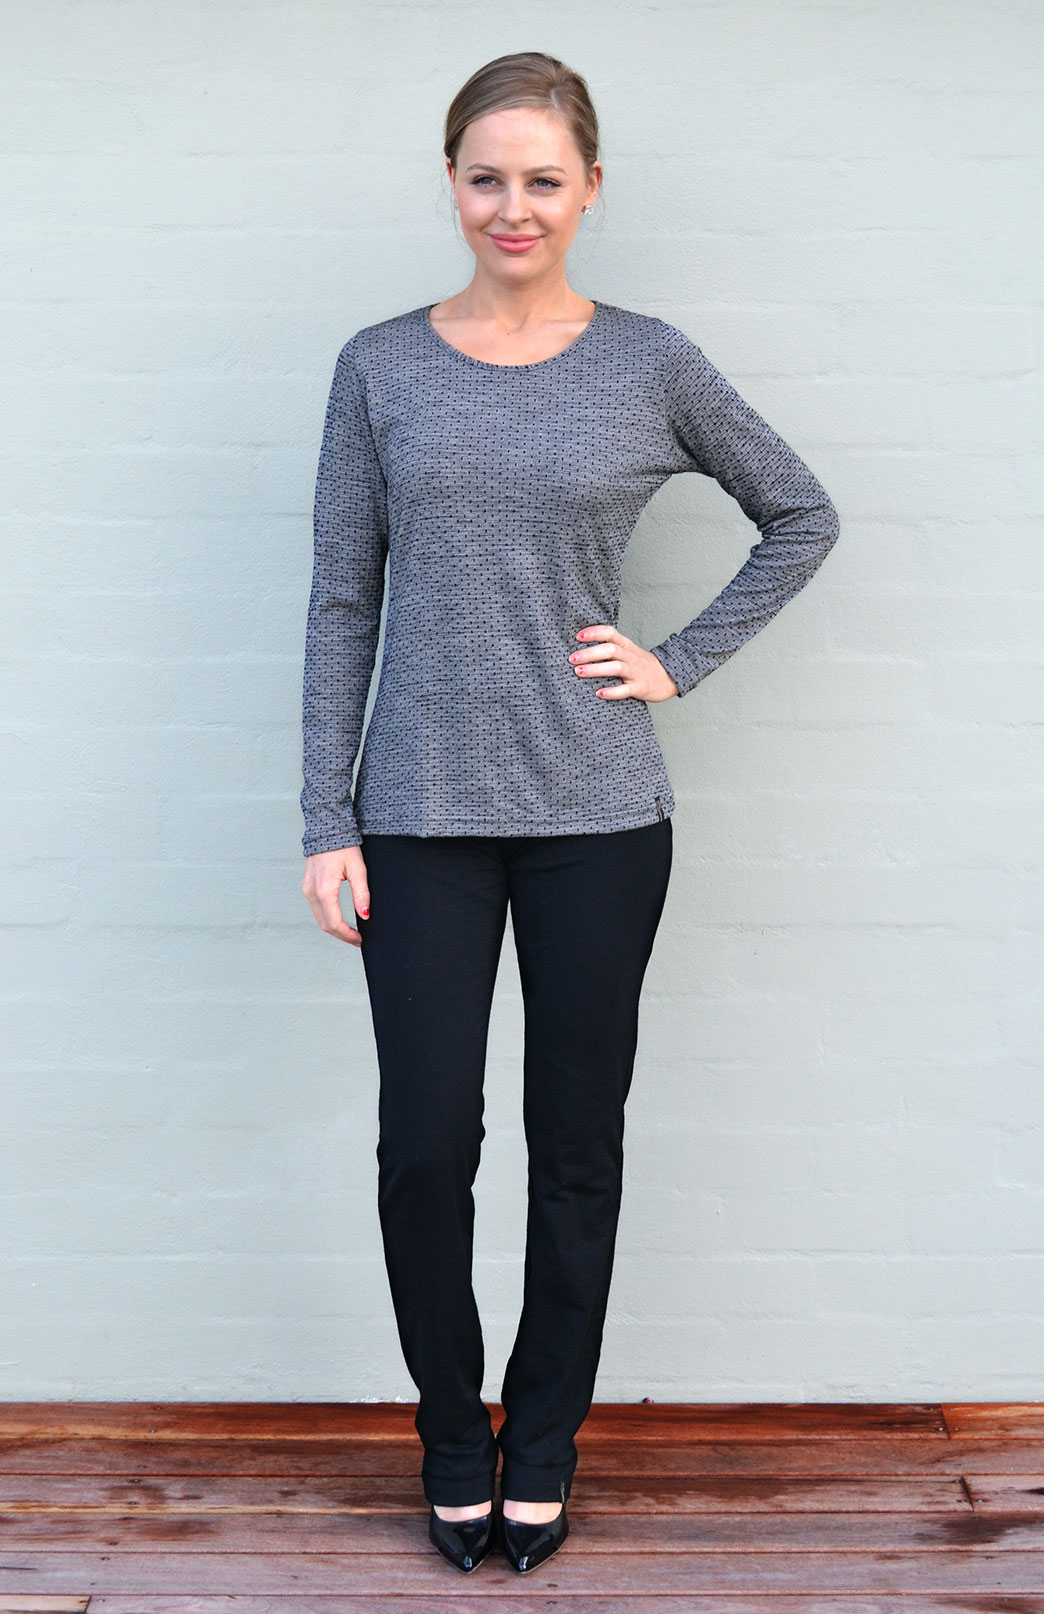 Round Neck Top - Patterned - Women's Black and Grey Spot Long Sleeved Merino Wool Thermal Fashion Top - Smitten Merino Tasmania Australia